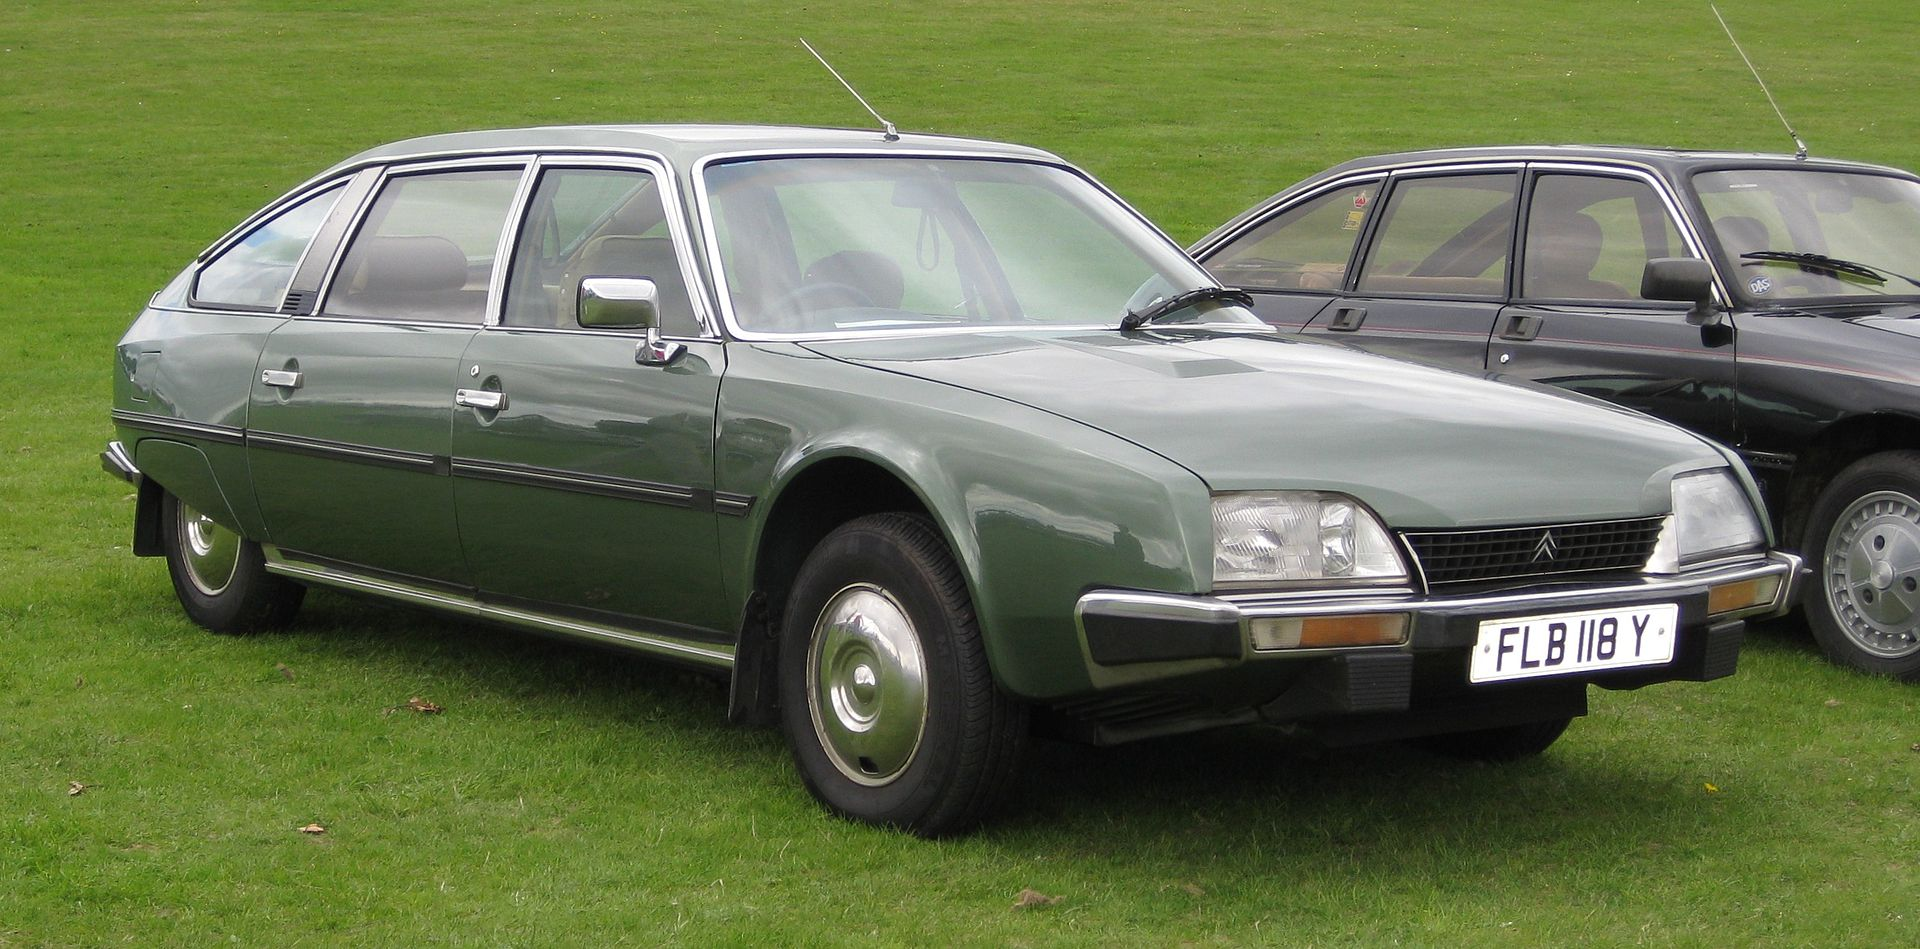 Citroen_CX_Prestige_long_wheel_base_2347cc_March_1983.JPG